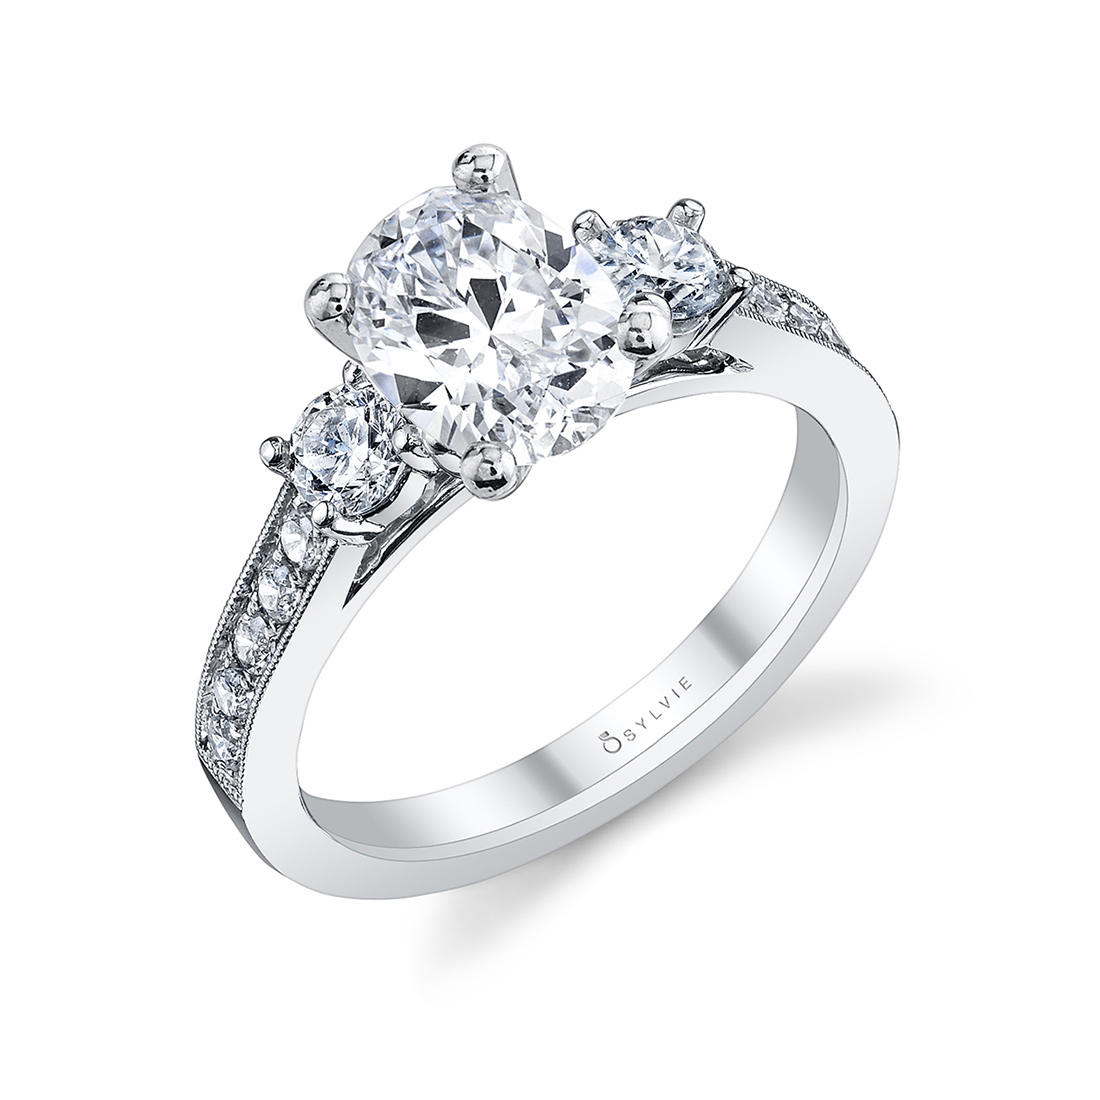 3 stone oval engagement ring in white gold